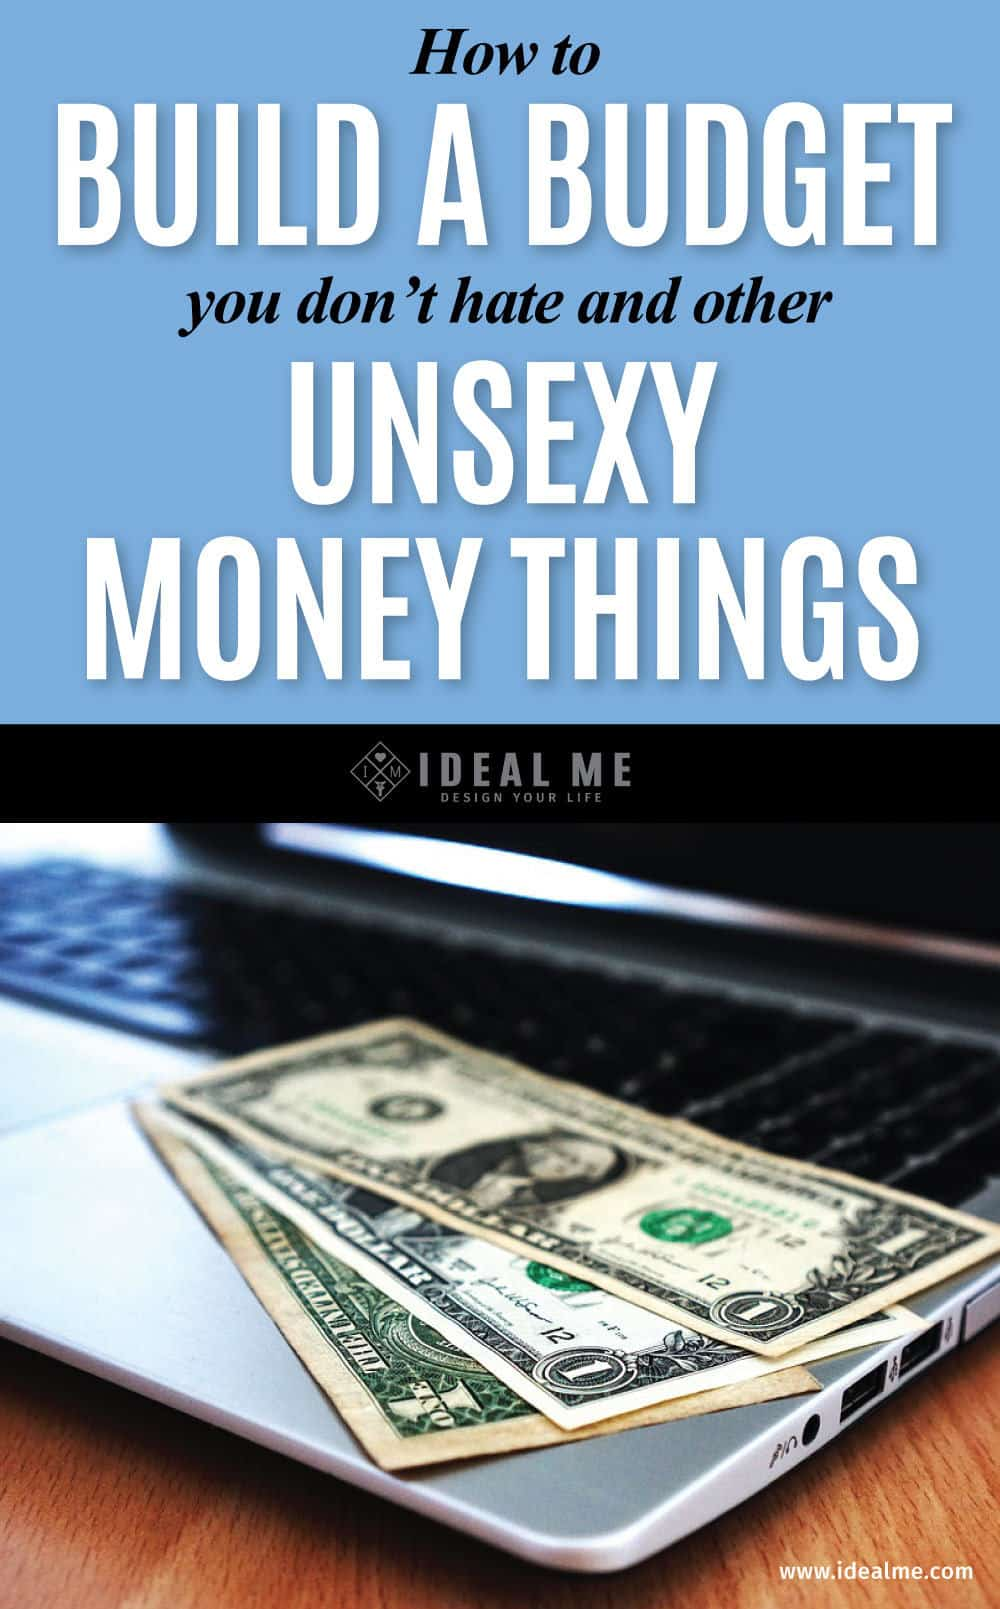 How To Build a Budget You Don't Hate & Other Unsexy Money Things - Knowing what's coming in and going out is the first step to reaching financial freedom. From building budget categories to tracking your spending, our post will guide you through building a sustainable budget in just 6 easy steps.